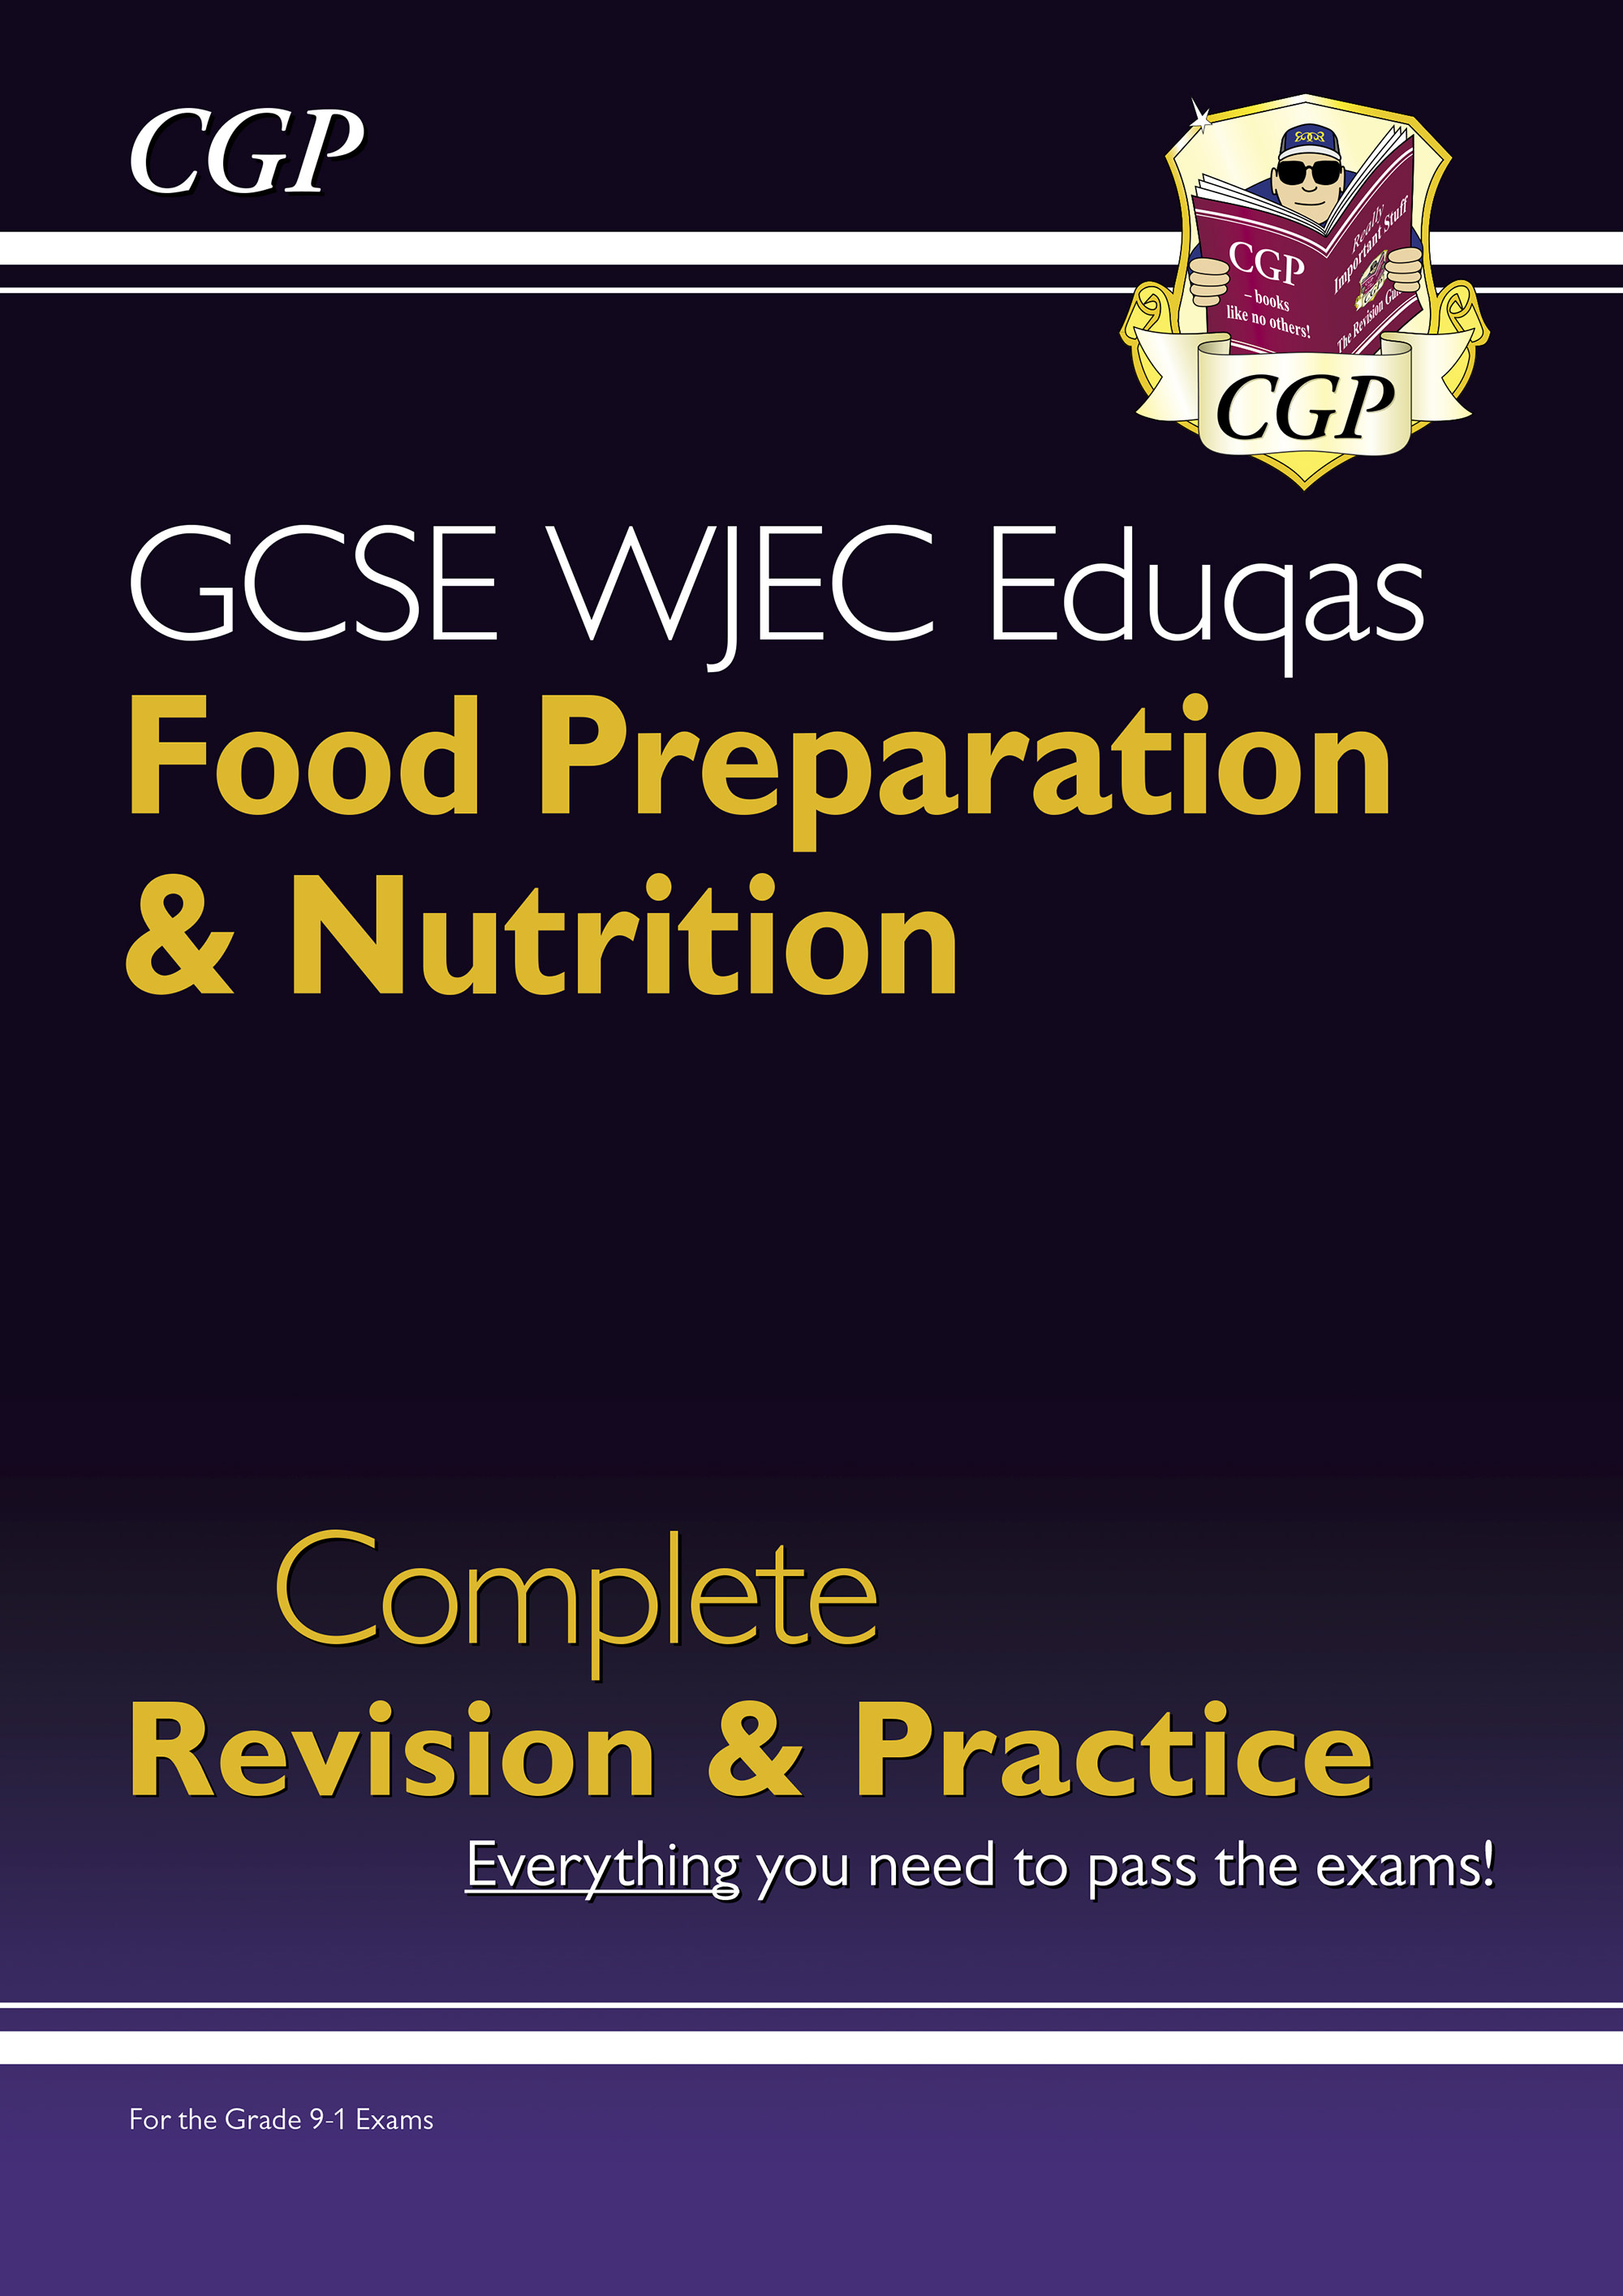 FNWS41DK - New 9-1 GCSE Food Preparation & Nutrition WJEC Eduqas Complete Revision & Practice